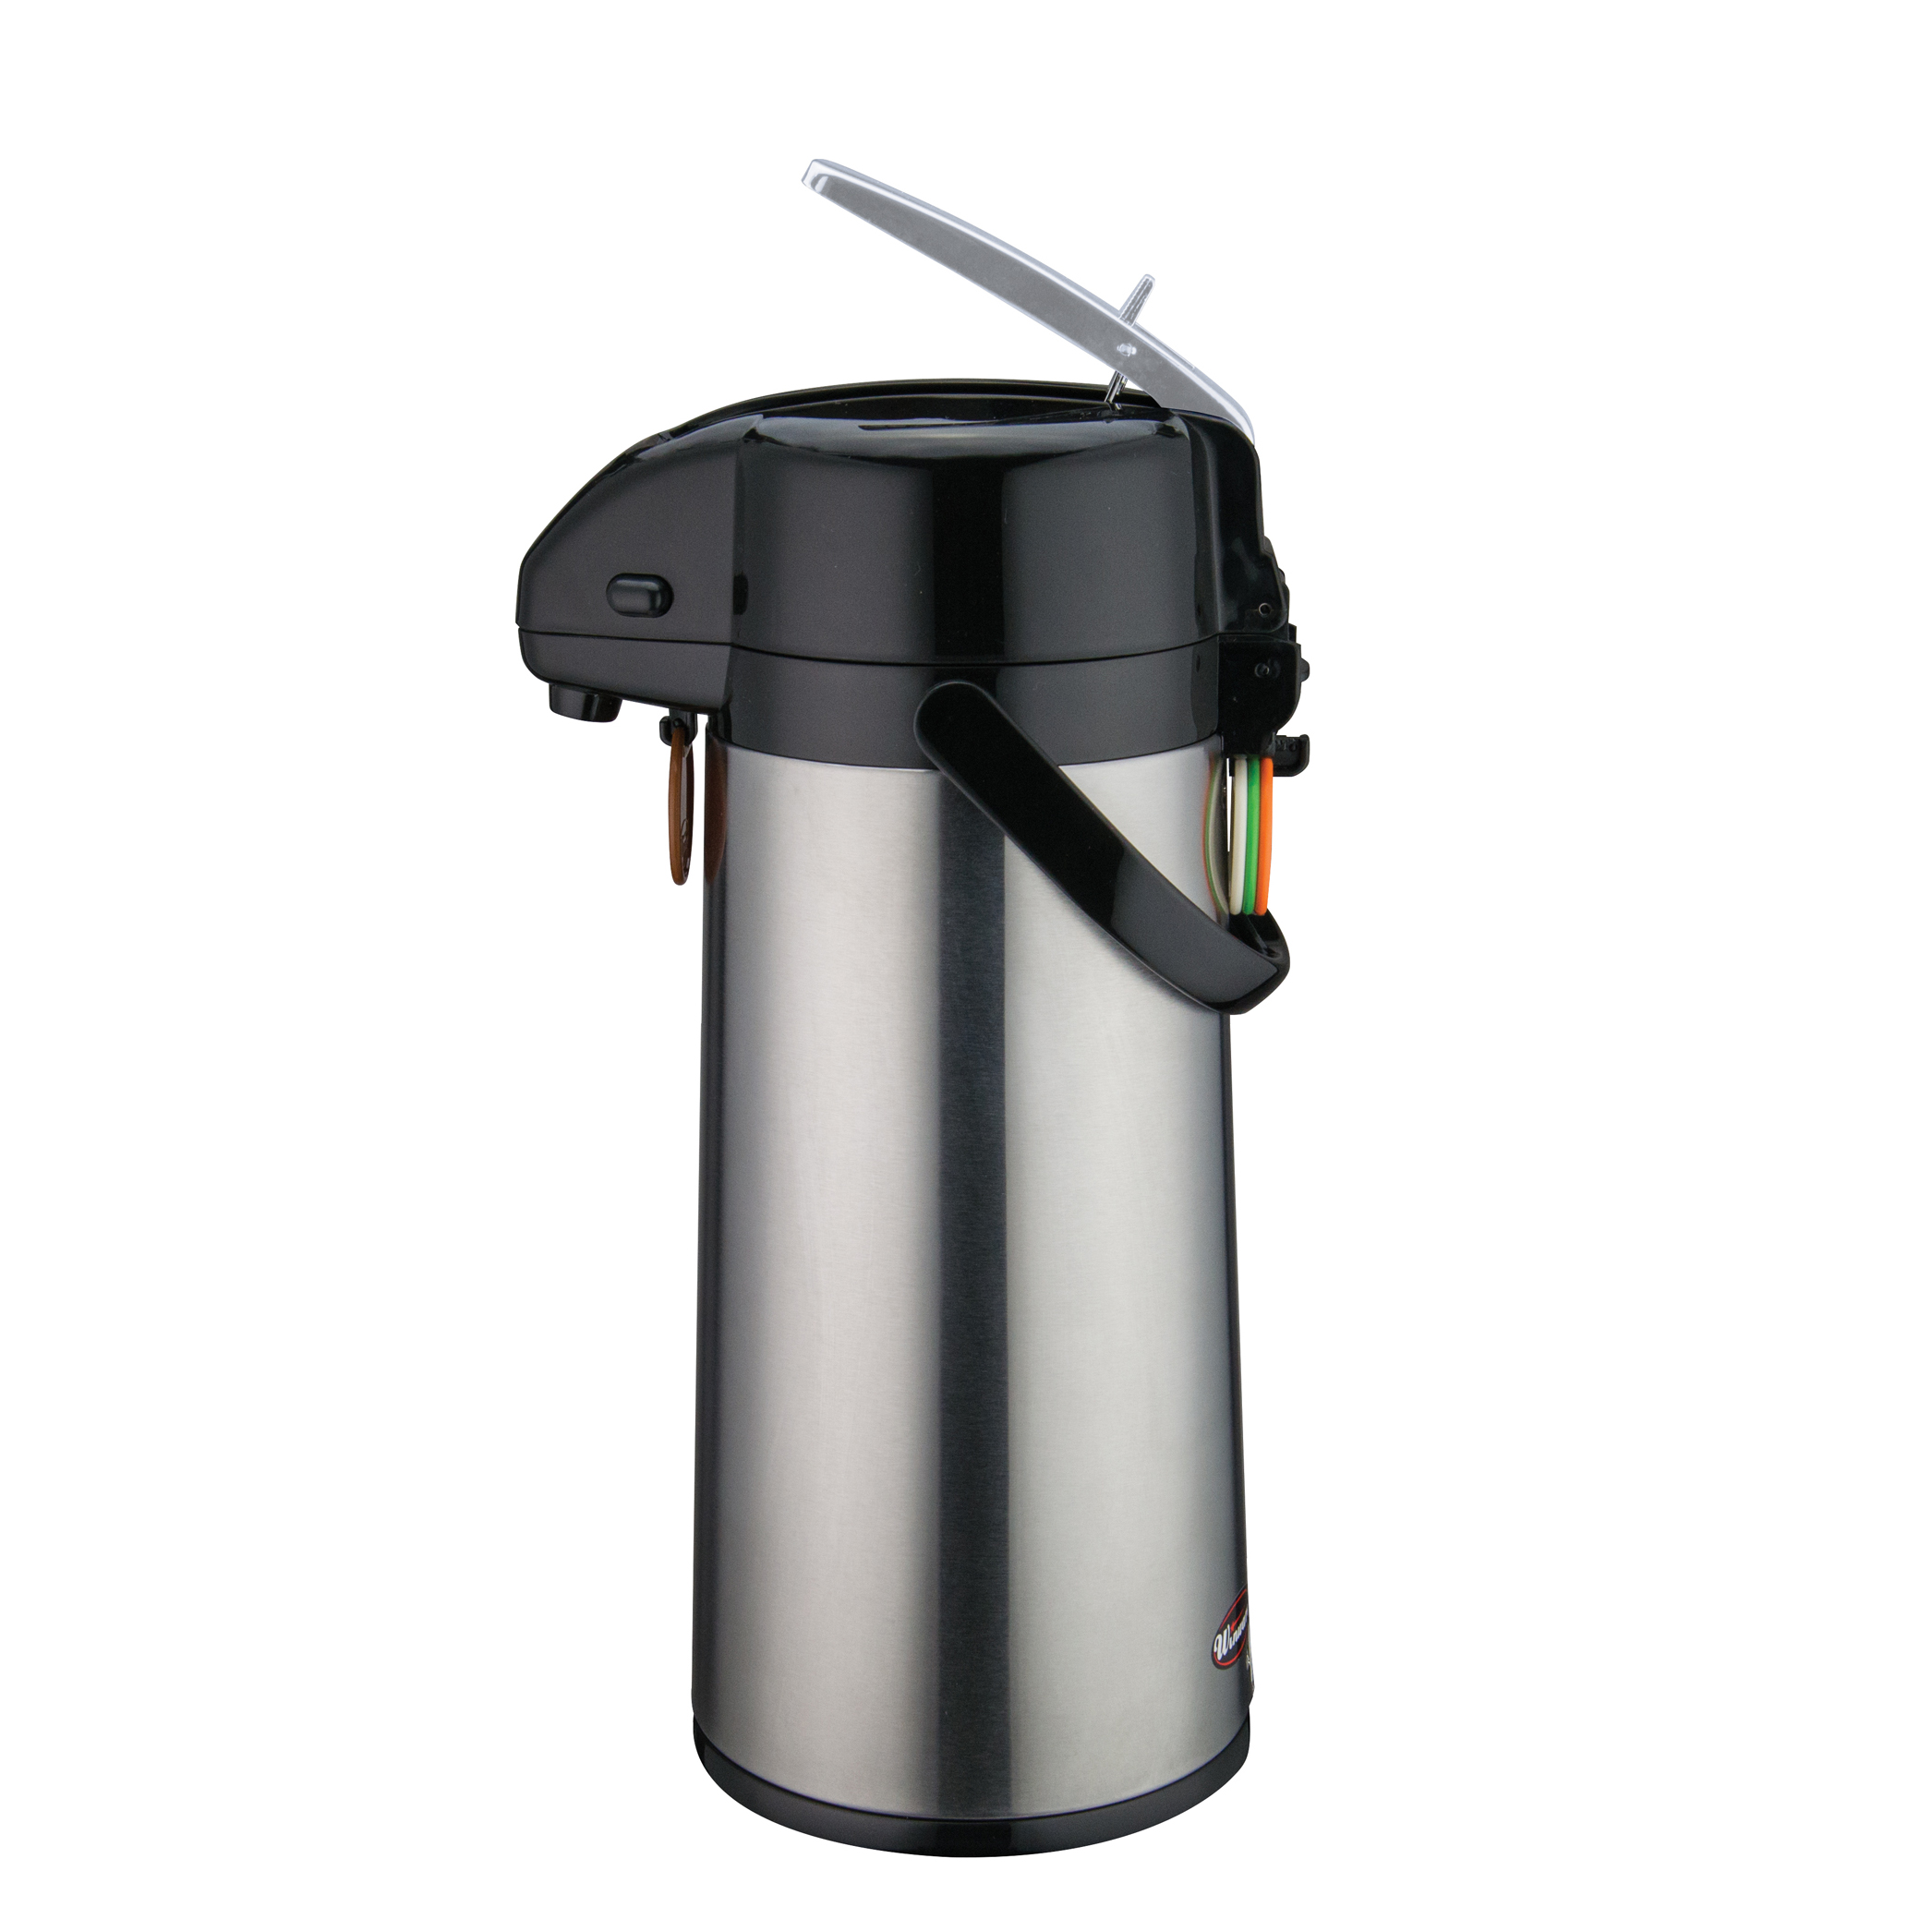 Winco AP-822 airpot